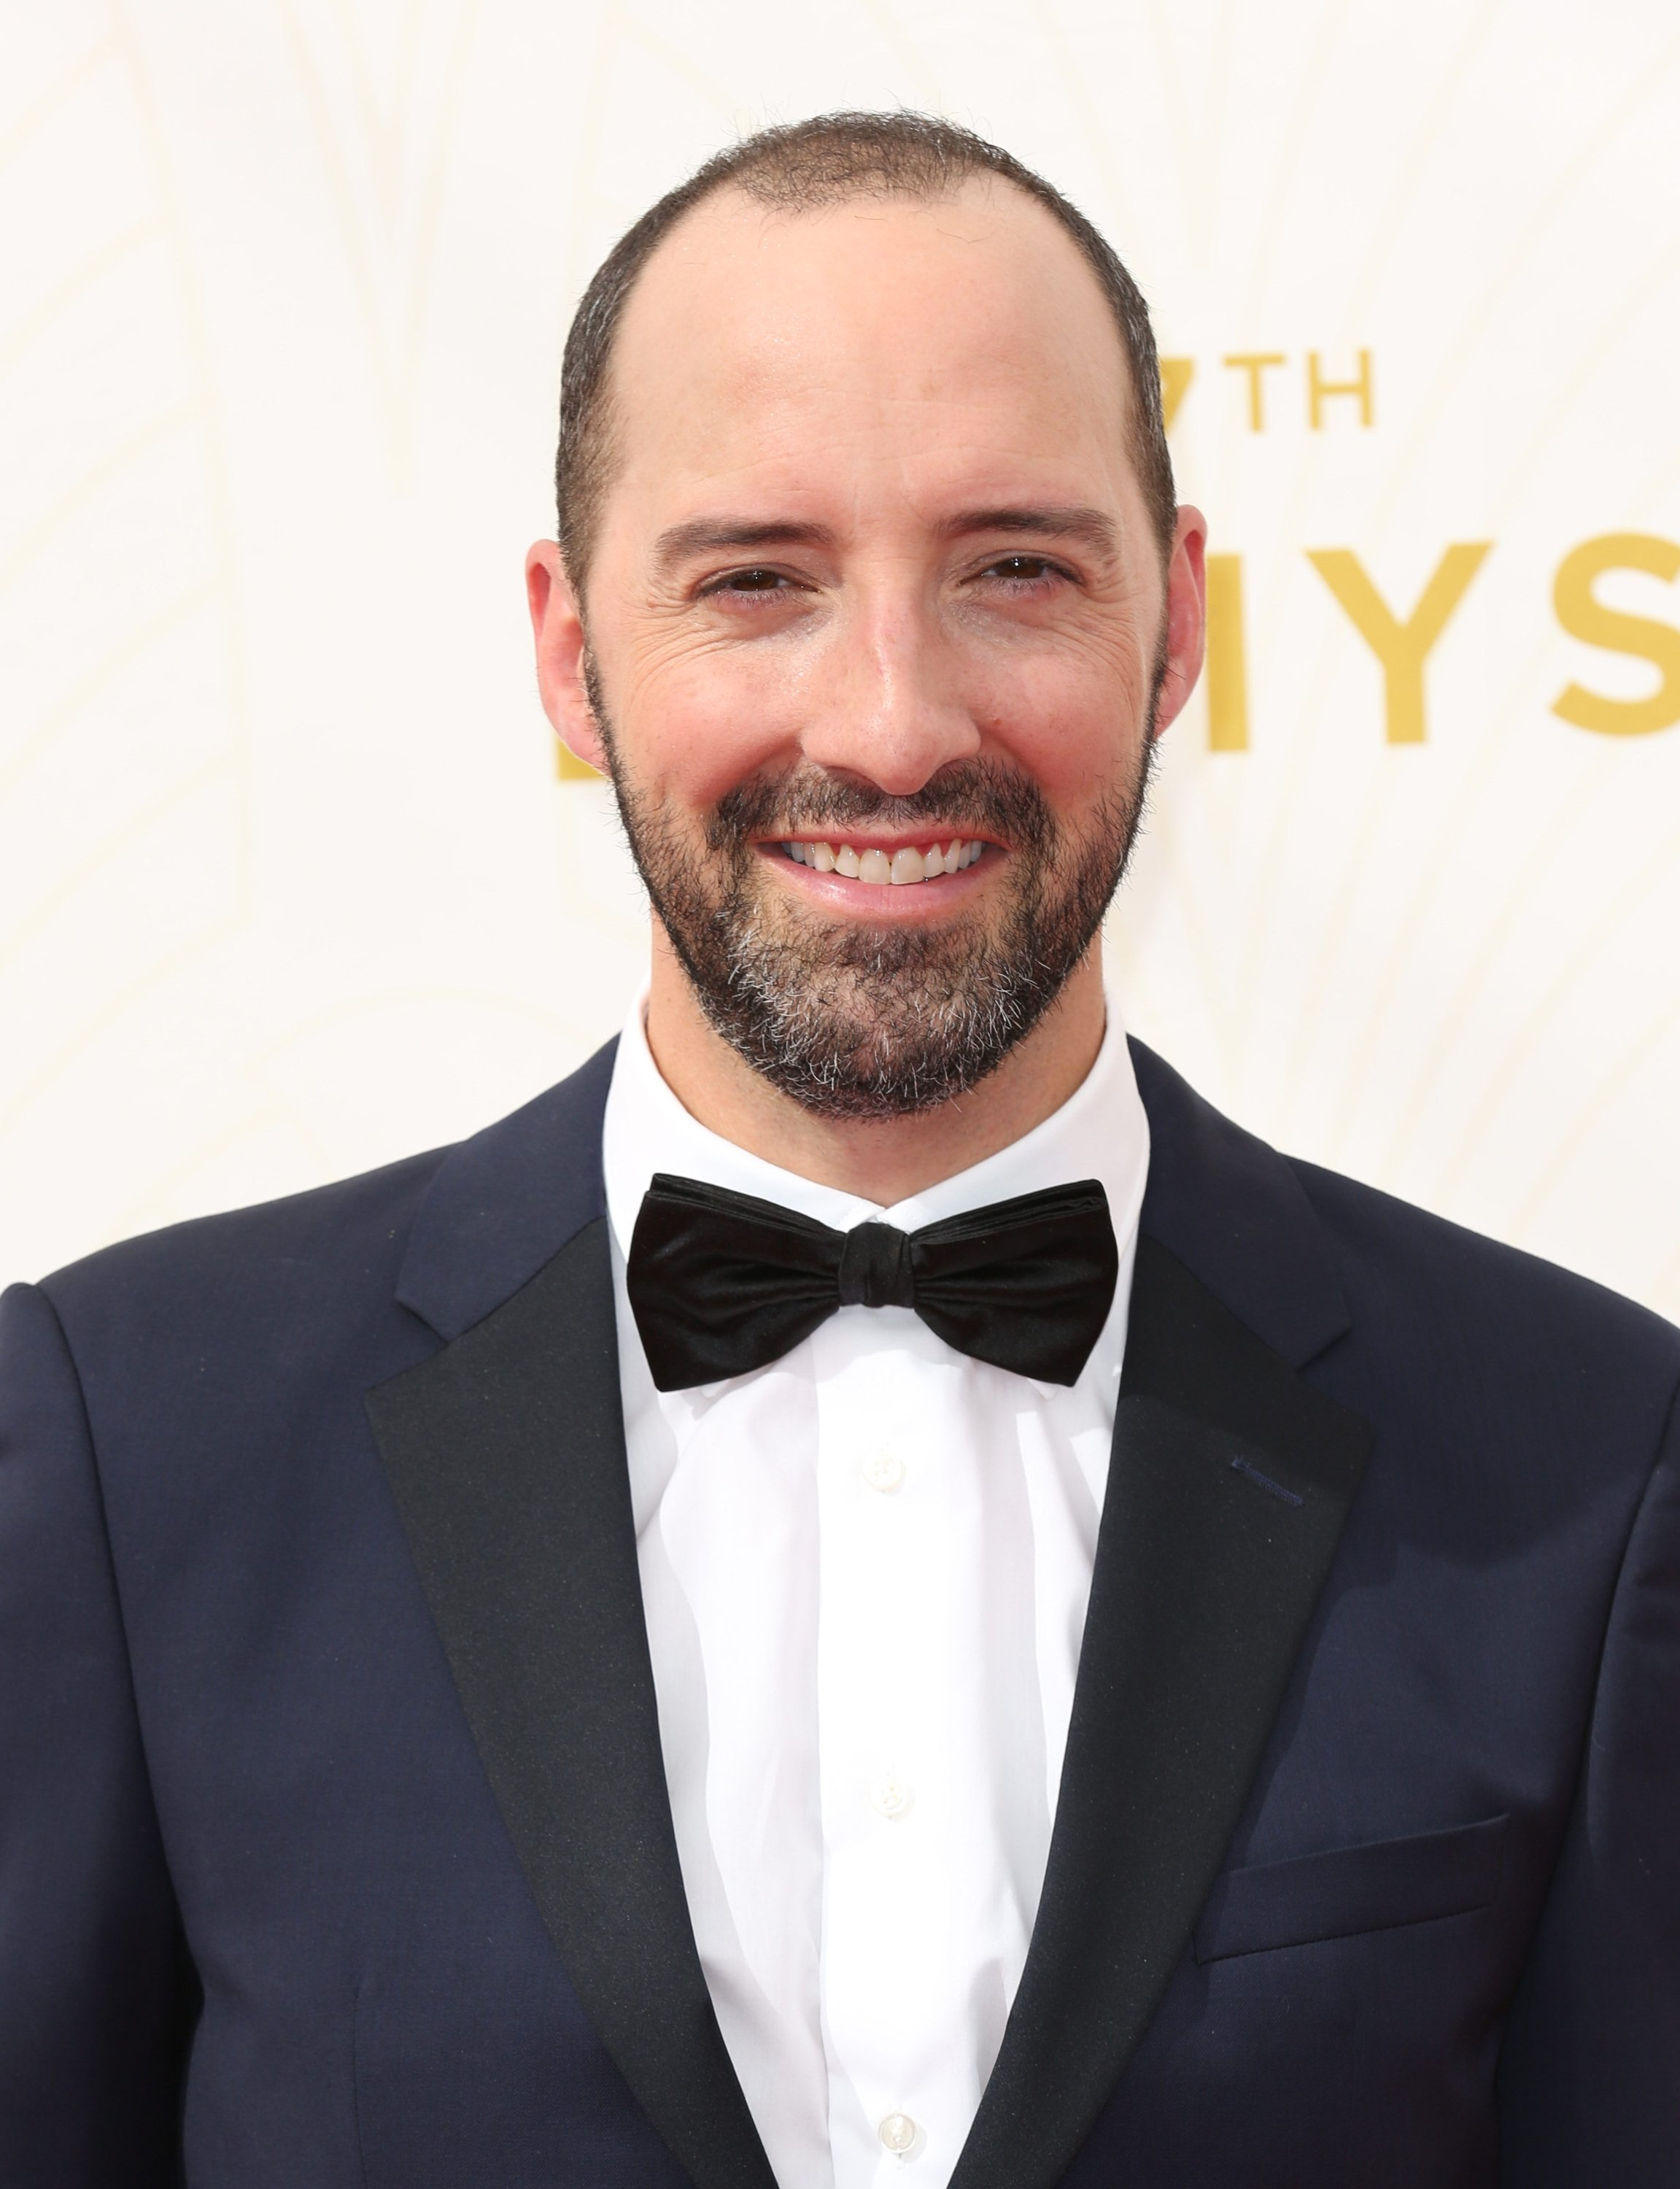 Celebrities arrive at 67th Emmys Red Carpet at Microsoft Theater.  Featuring: Tony Hale Where: Los Angeles, California, United States When: 20 Sep 2015 Credit: Brian To/WENN.com